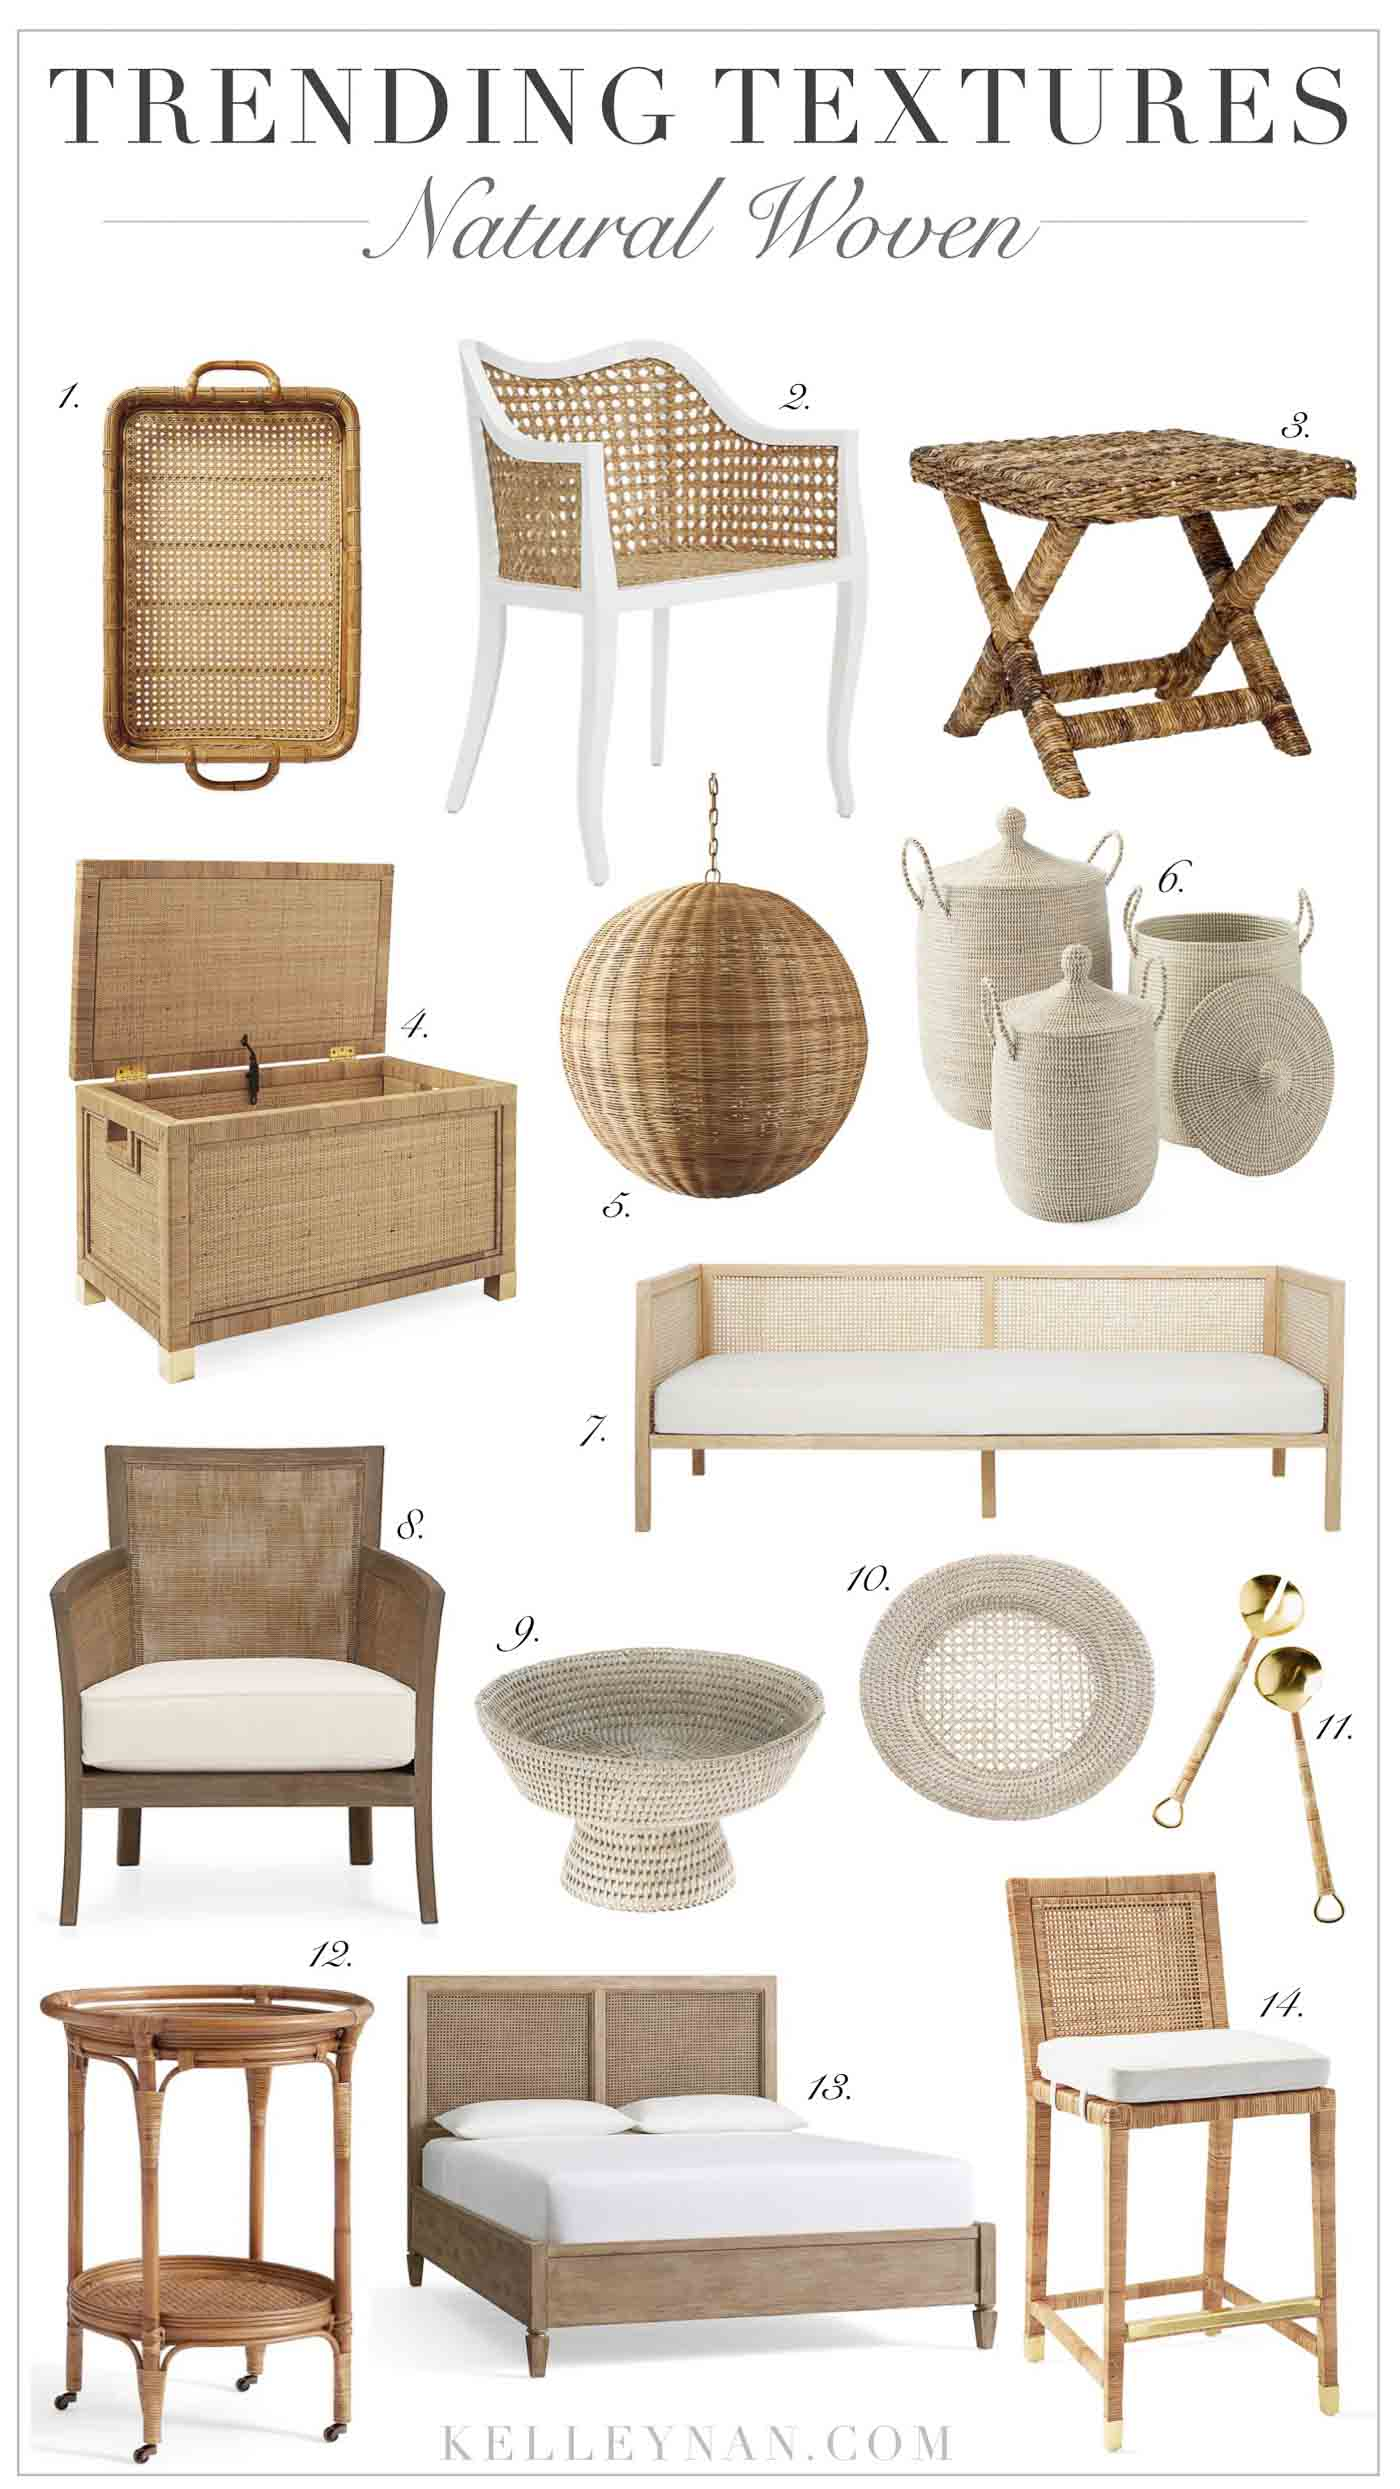 Favorite Rattan, Cane, Wicker, and Woven Furniture and Home Decor